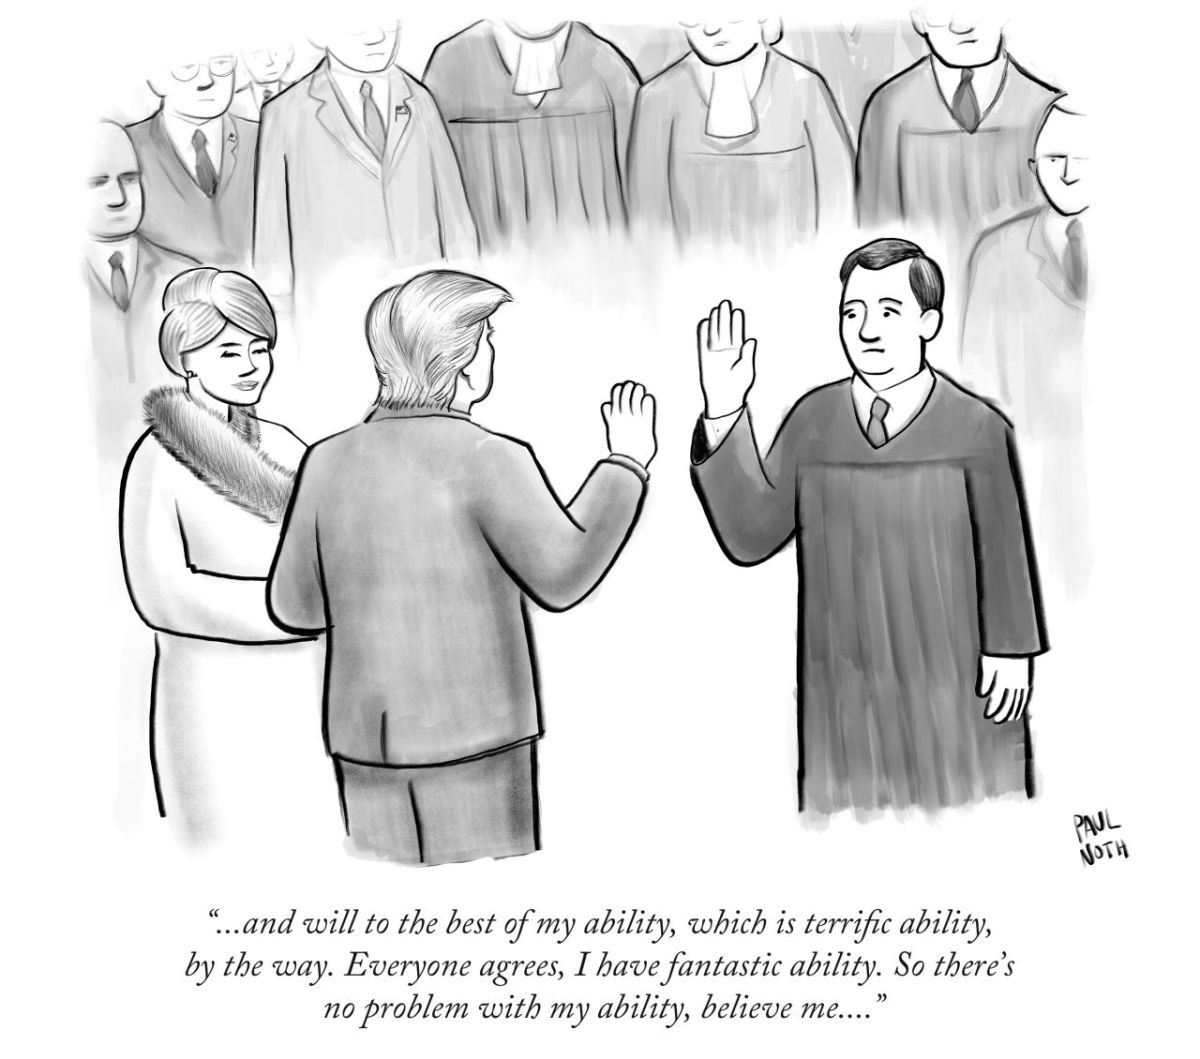 The New Yorker Cartoon About the Trump Presidency